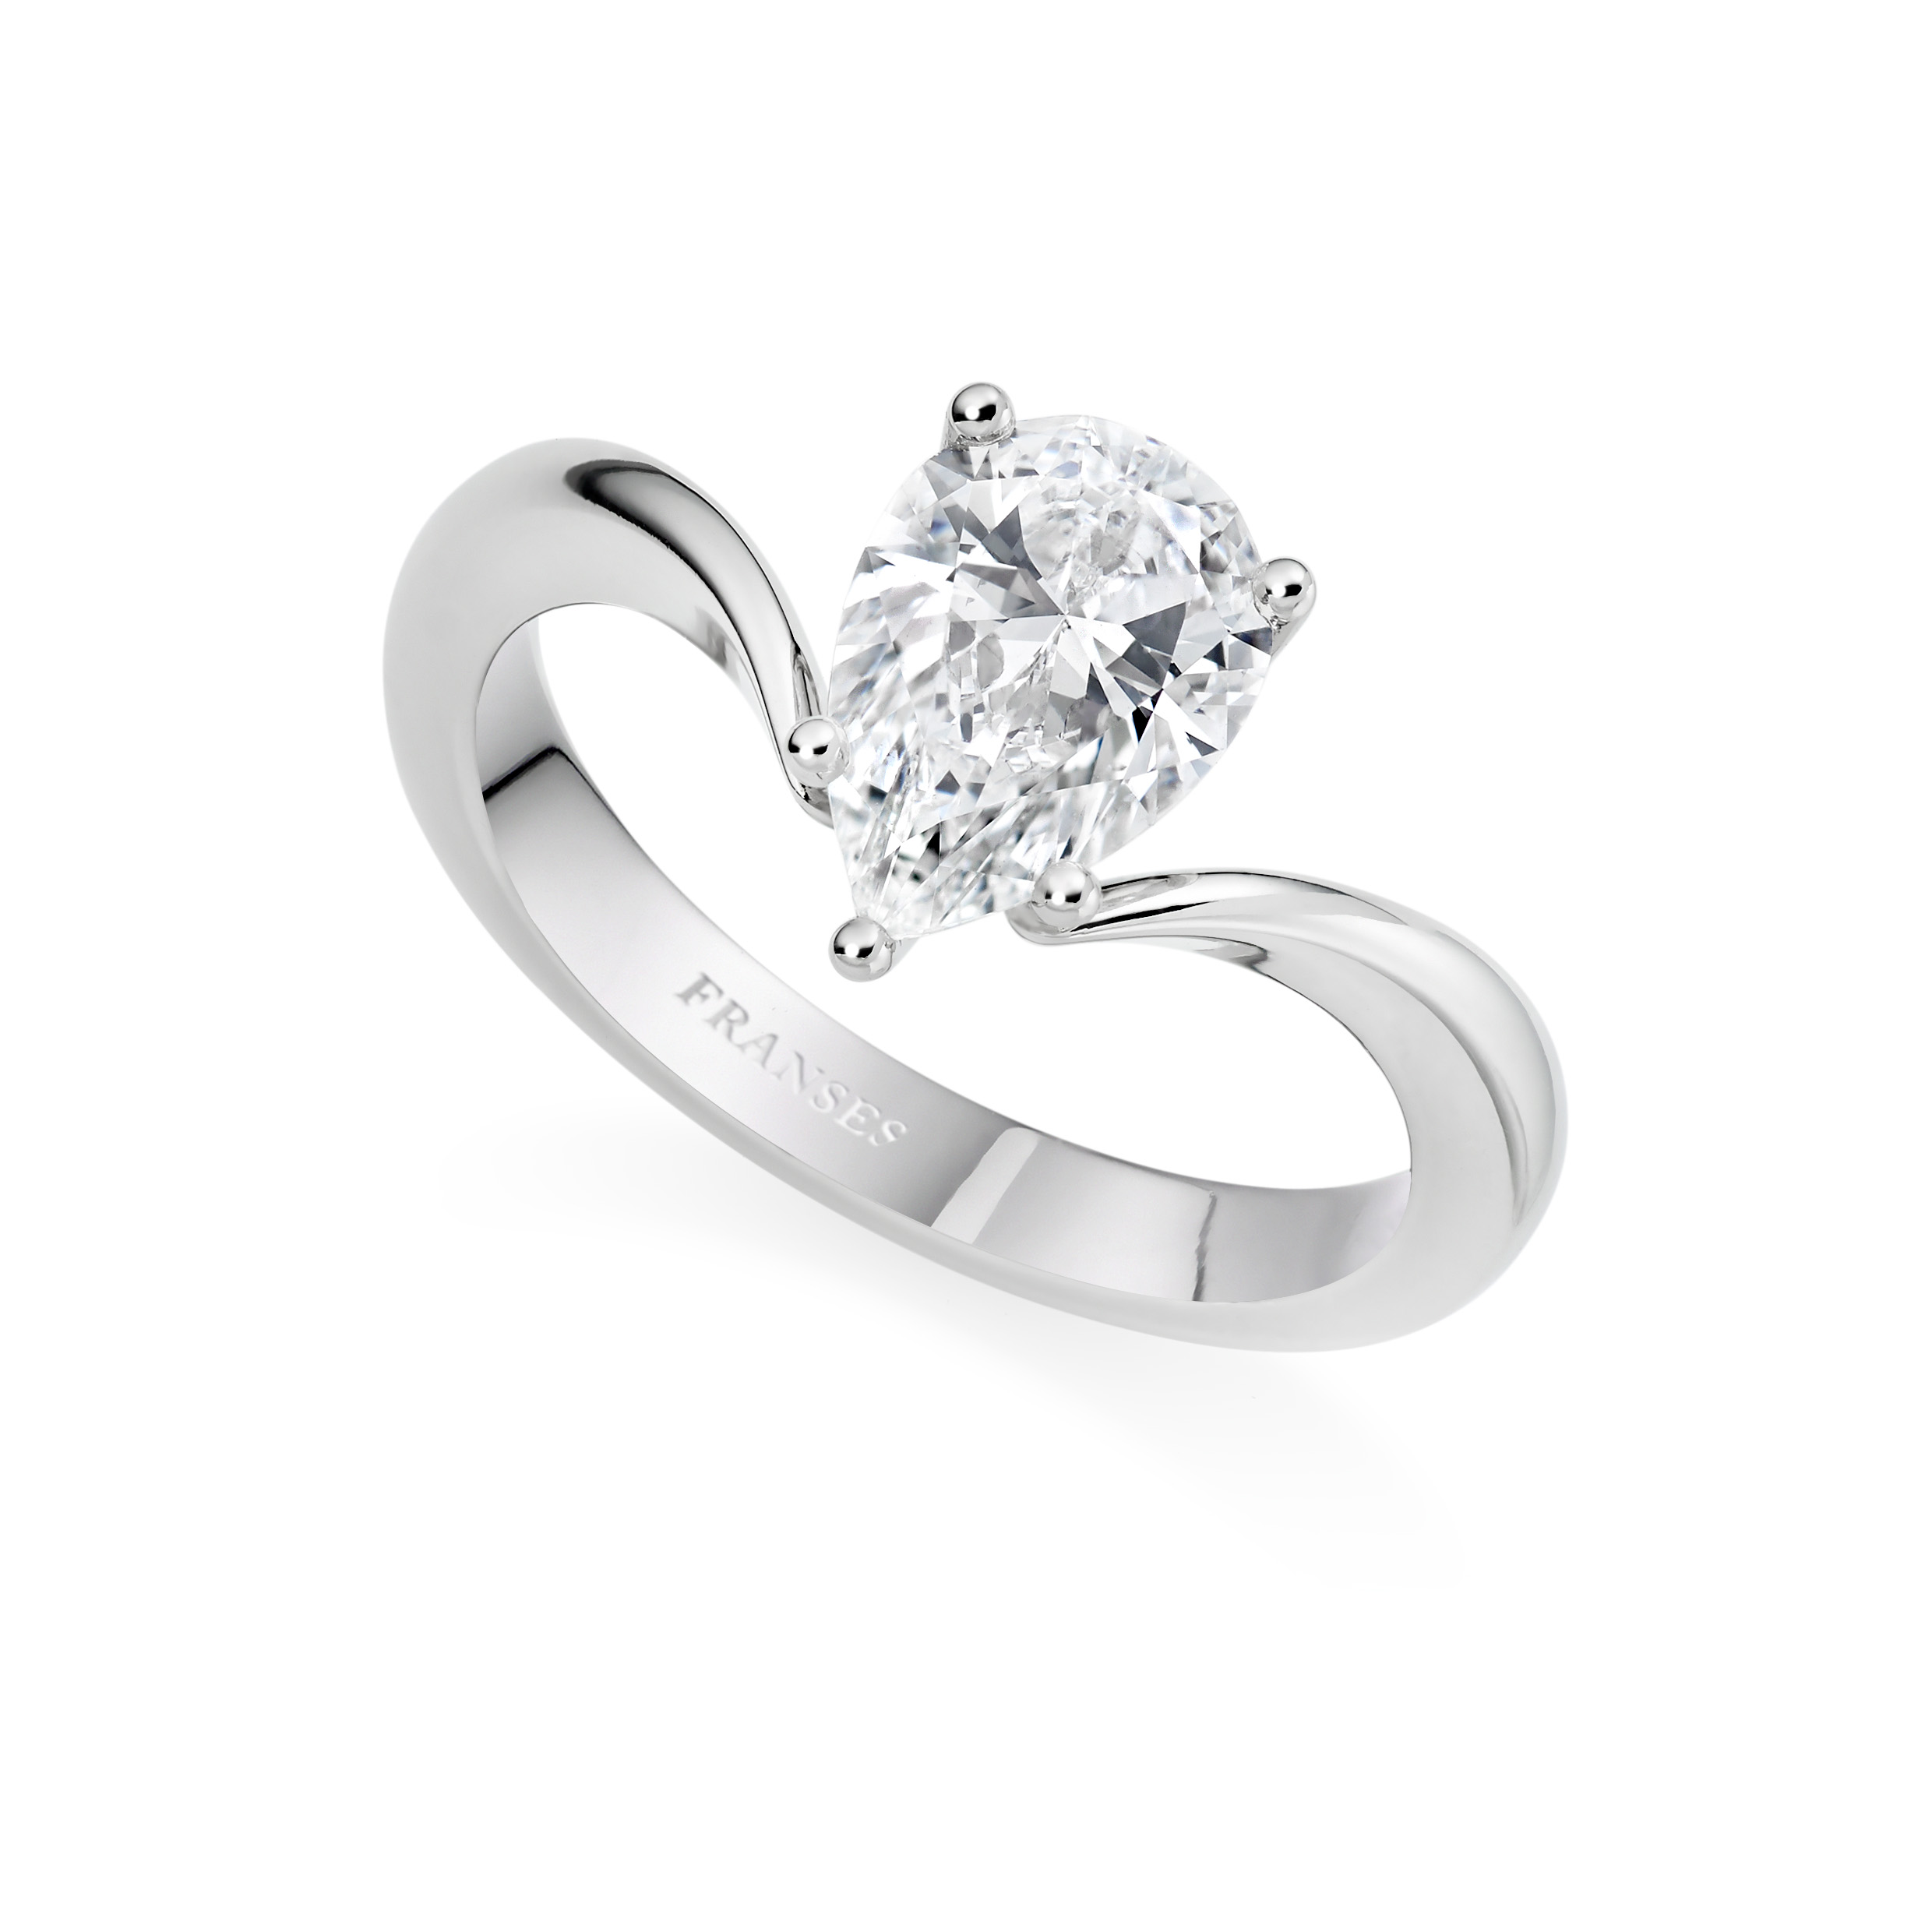 Platinum Pear Cut Diamond Ring - 01-01-043